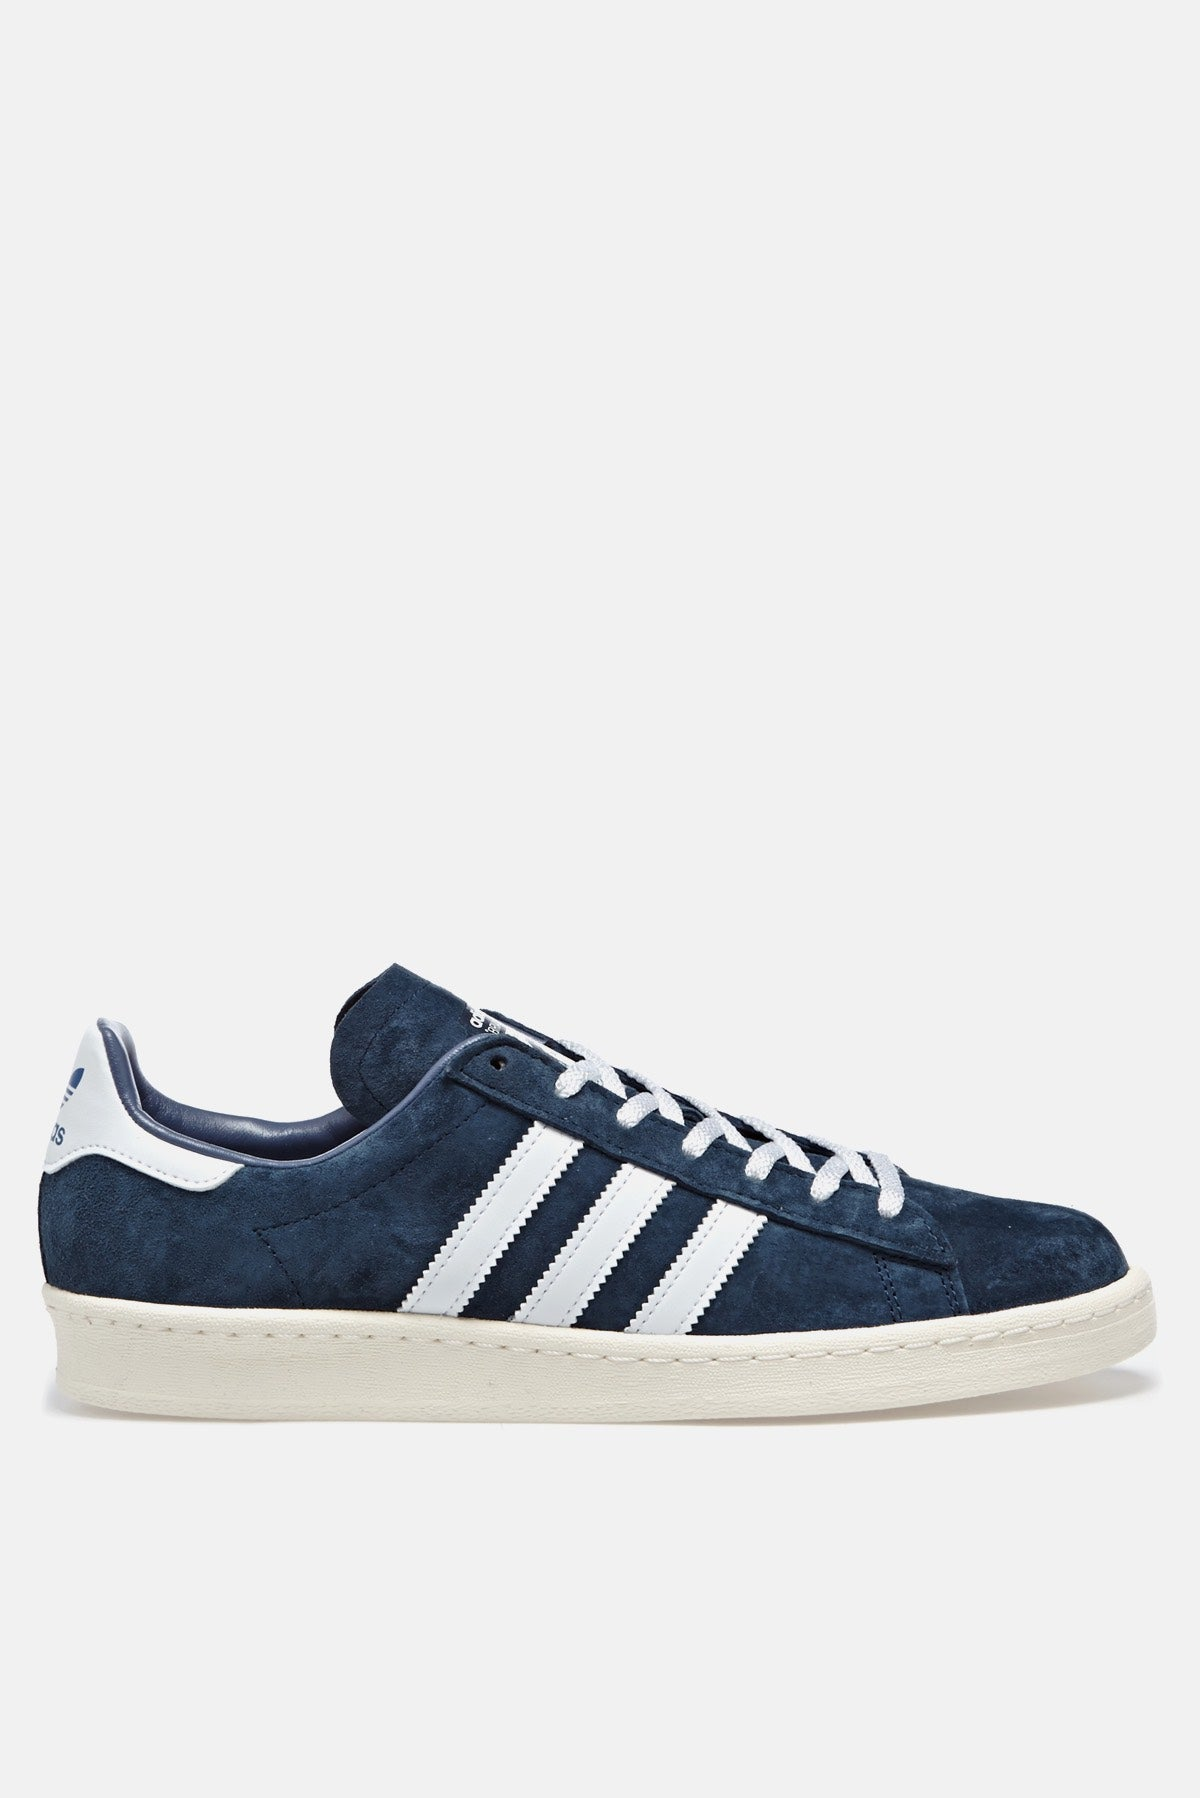 Adidas Campus 80's Respect Your Roots Sko